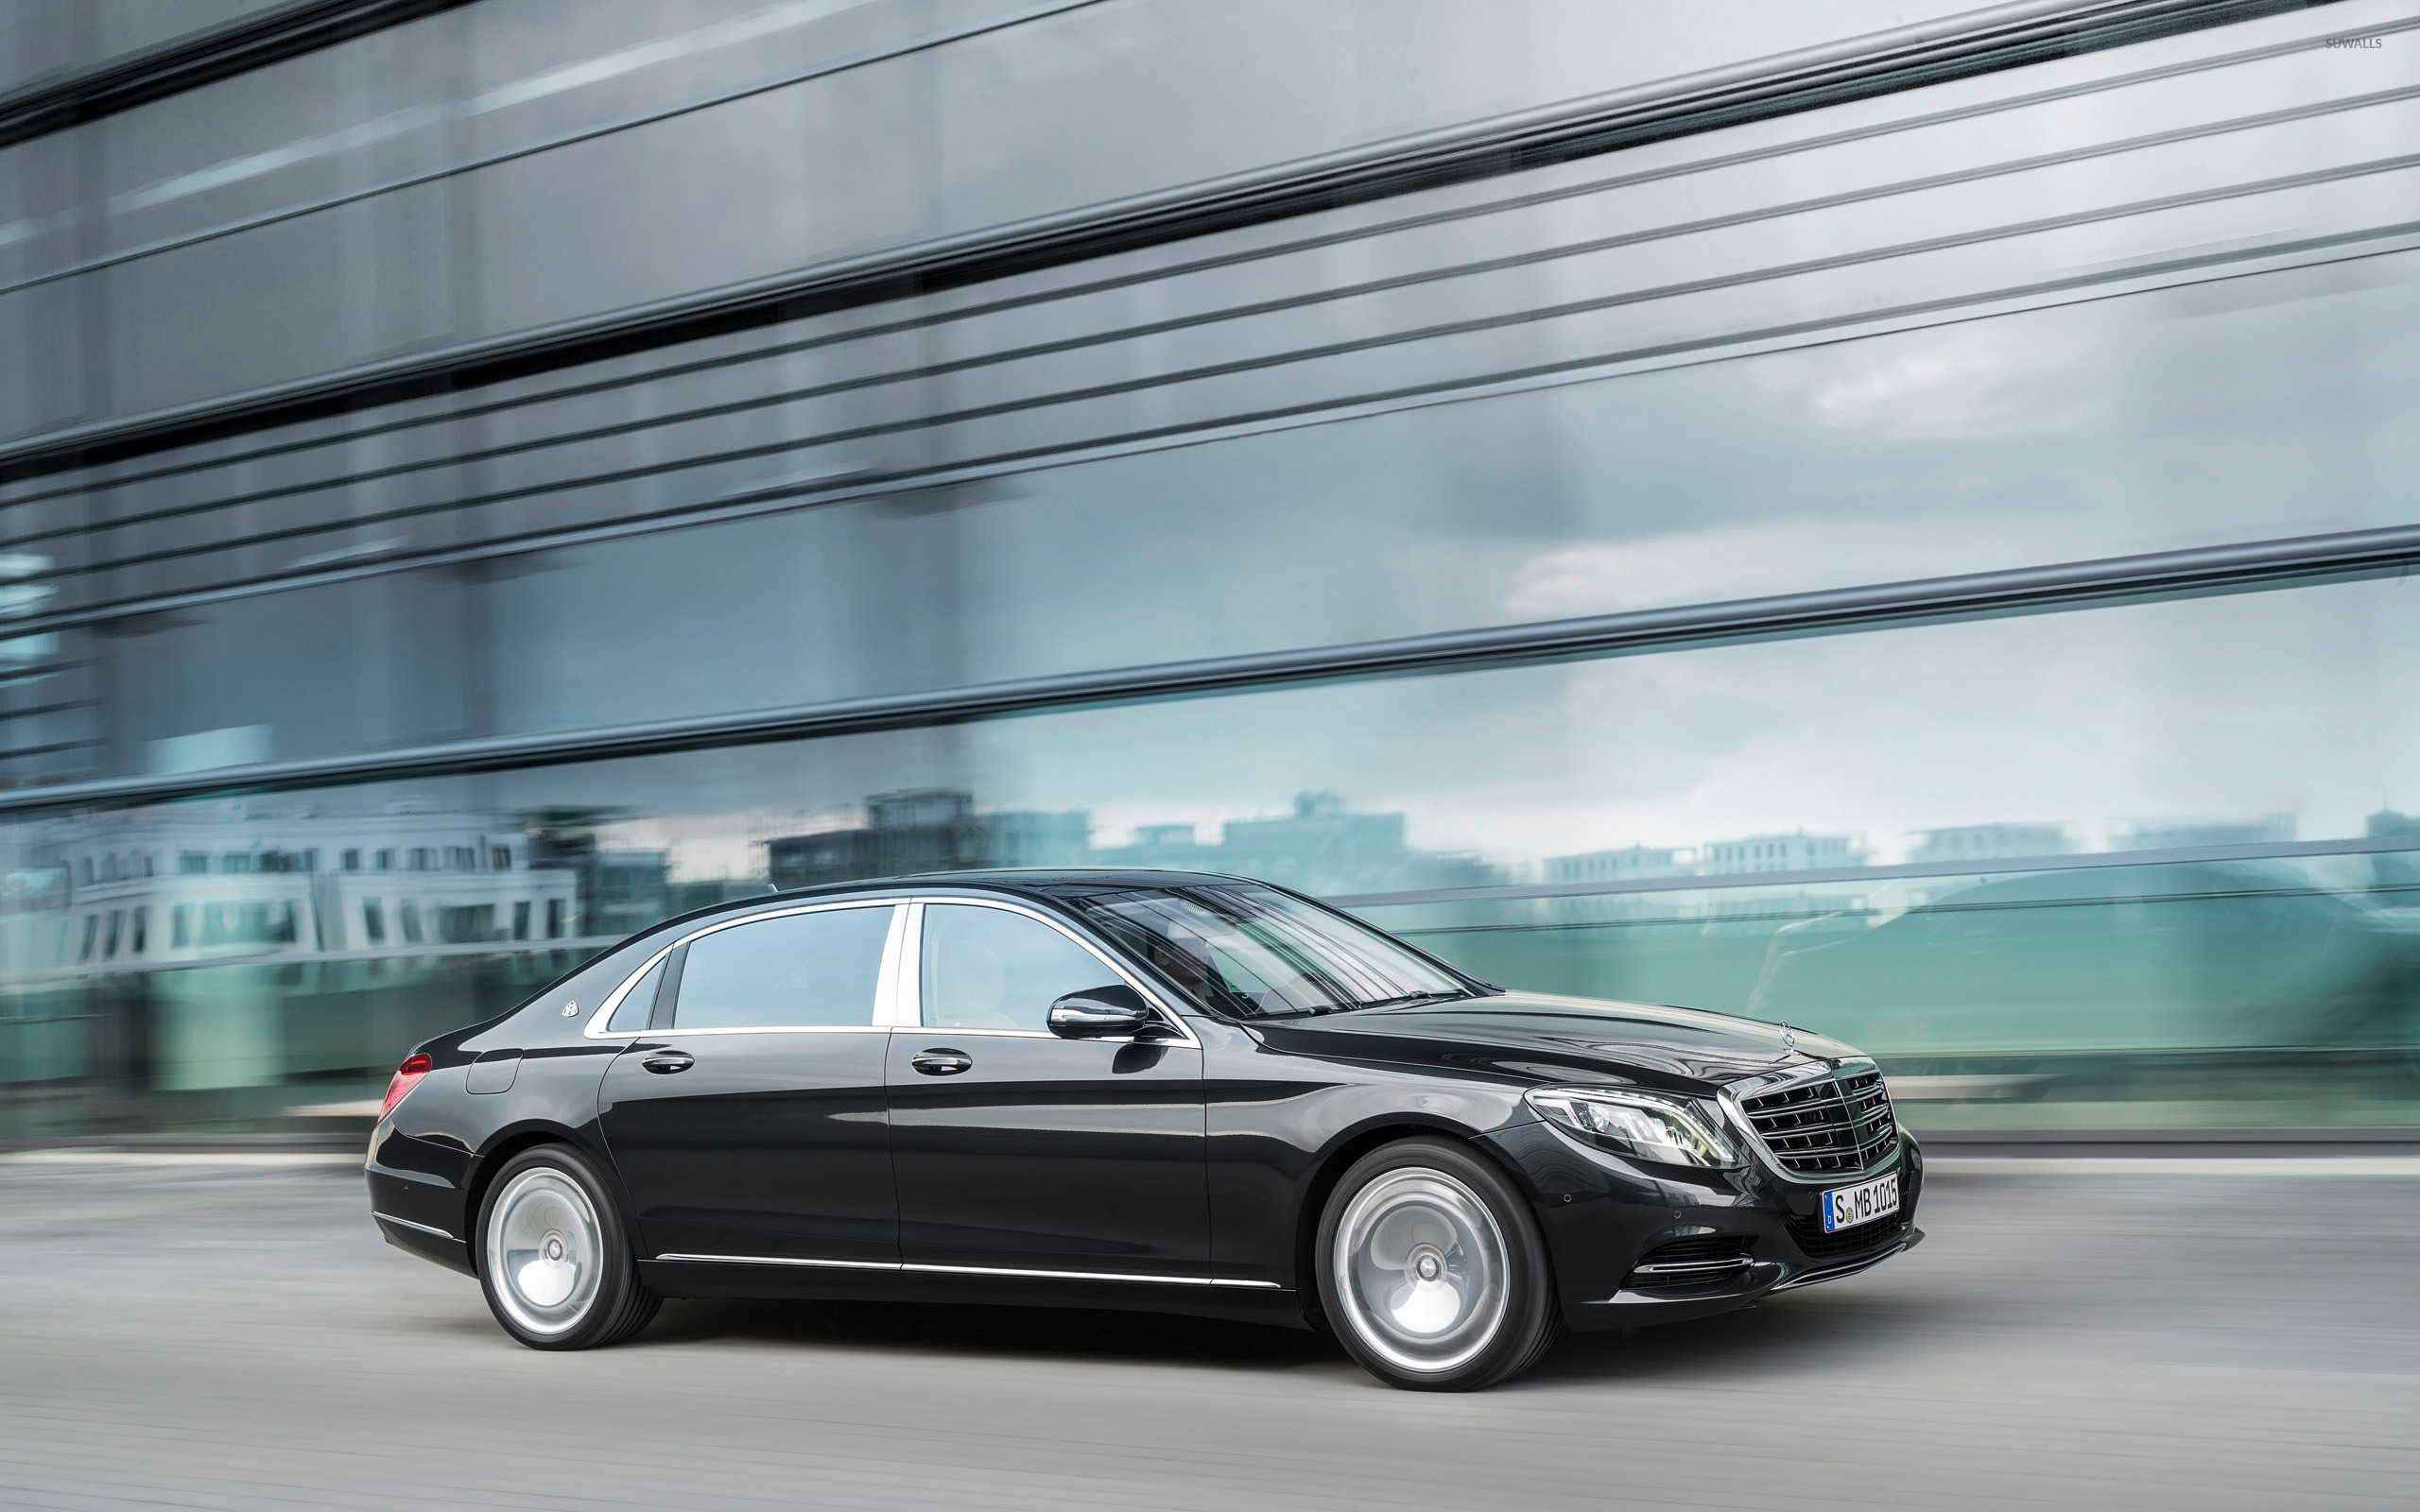 2015 Mercedes Maybach S600 [15] wallpaper   Car wallpapers 2560x1600